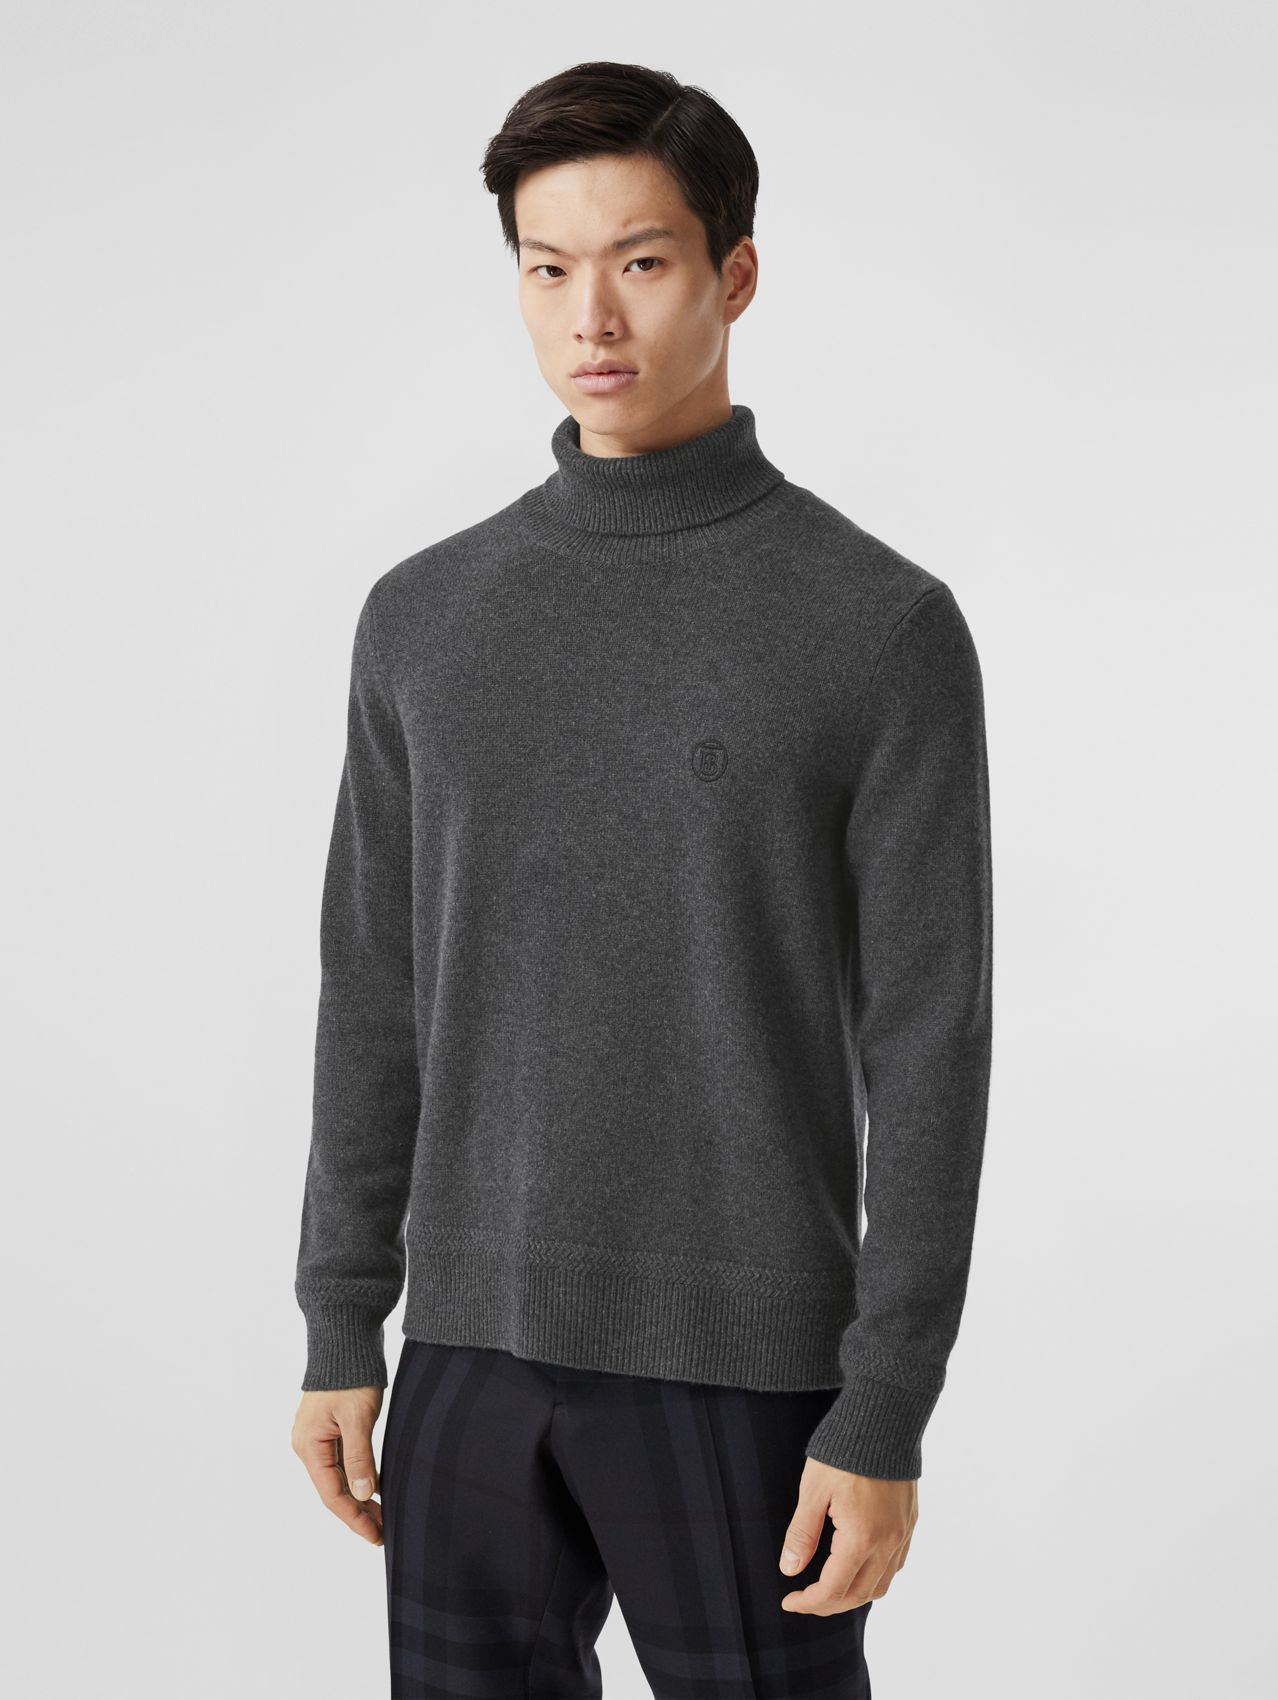 Monogram Motif Cashmere Roll-neck Sweater in Charcoal